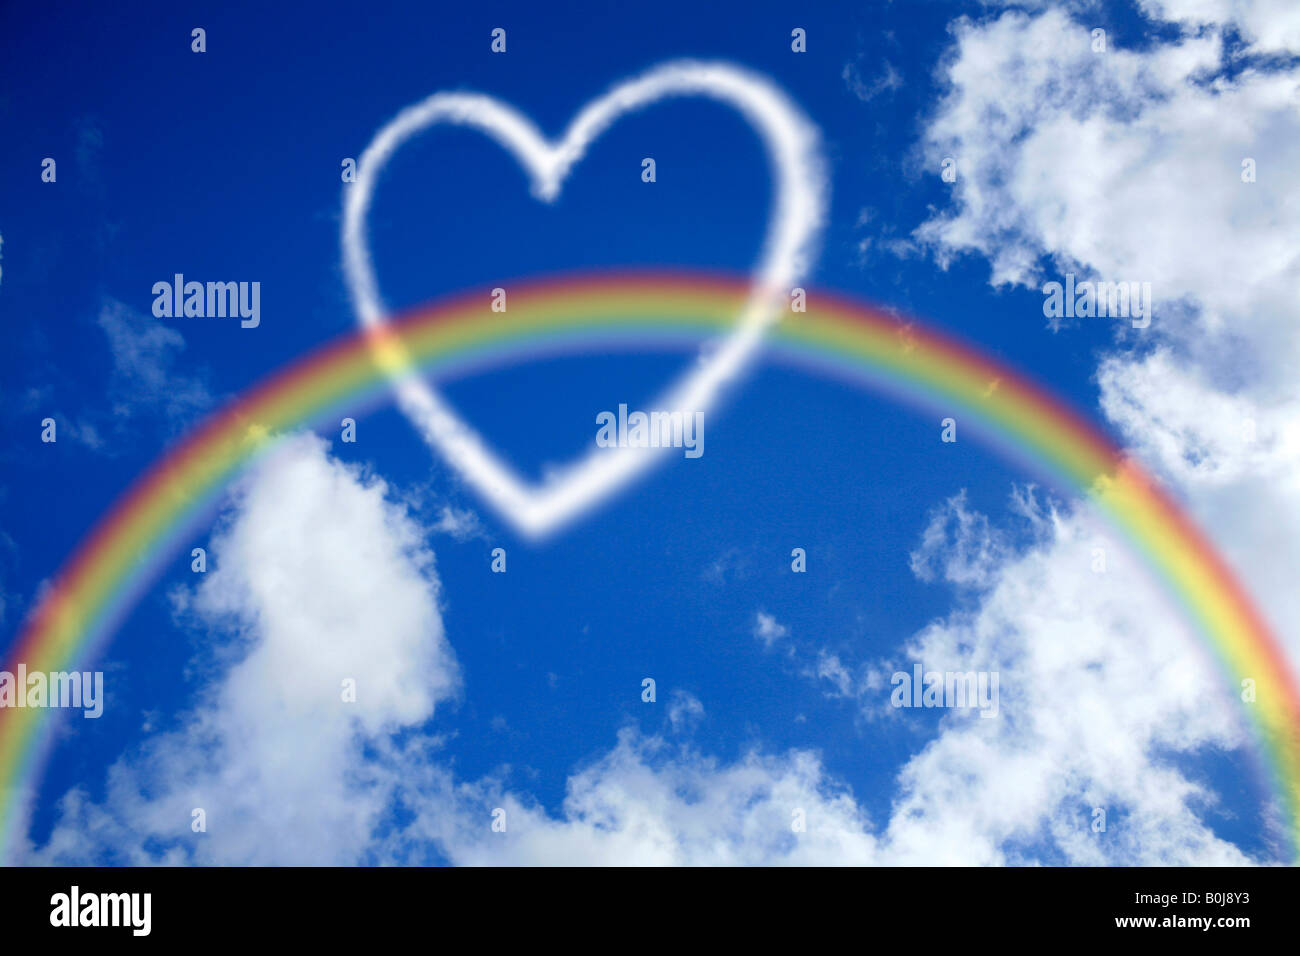 Love heart in the sky with a rainbow - Stock Image